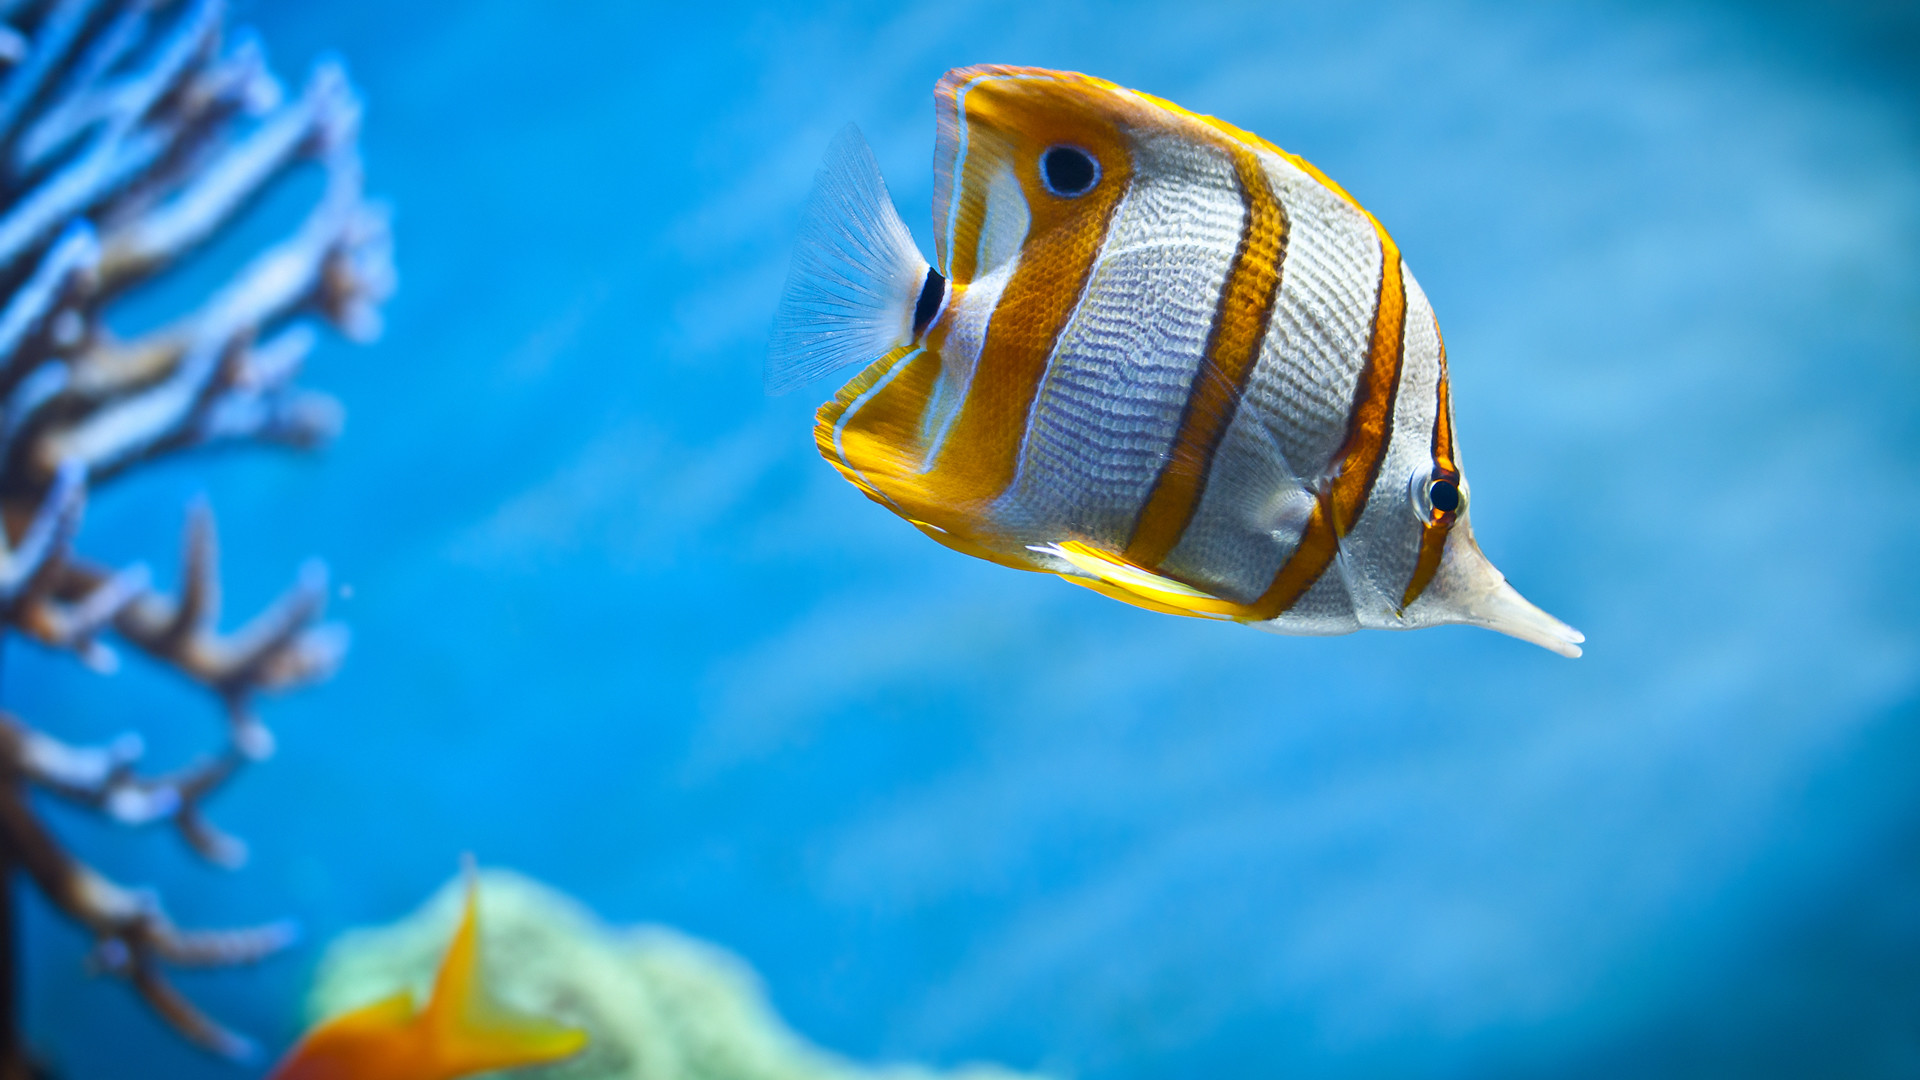 Fish Wallpaper : Find best latest Fish Wallpaper in HD for your PC desktop  background & mobile phones.